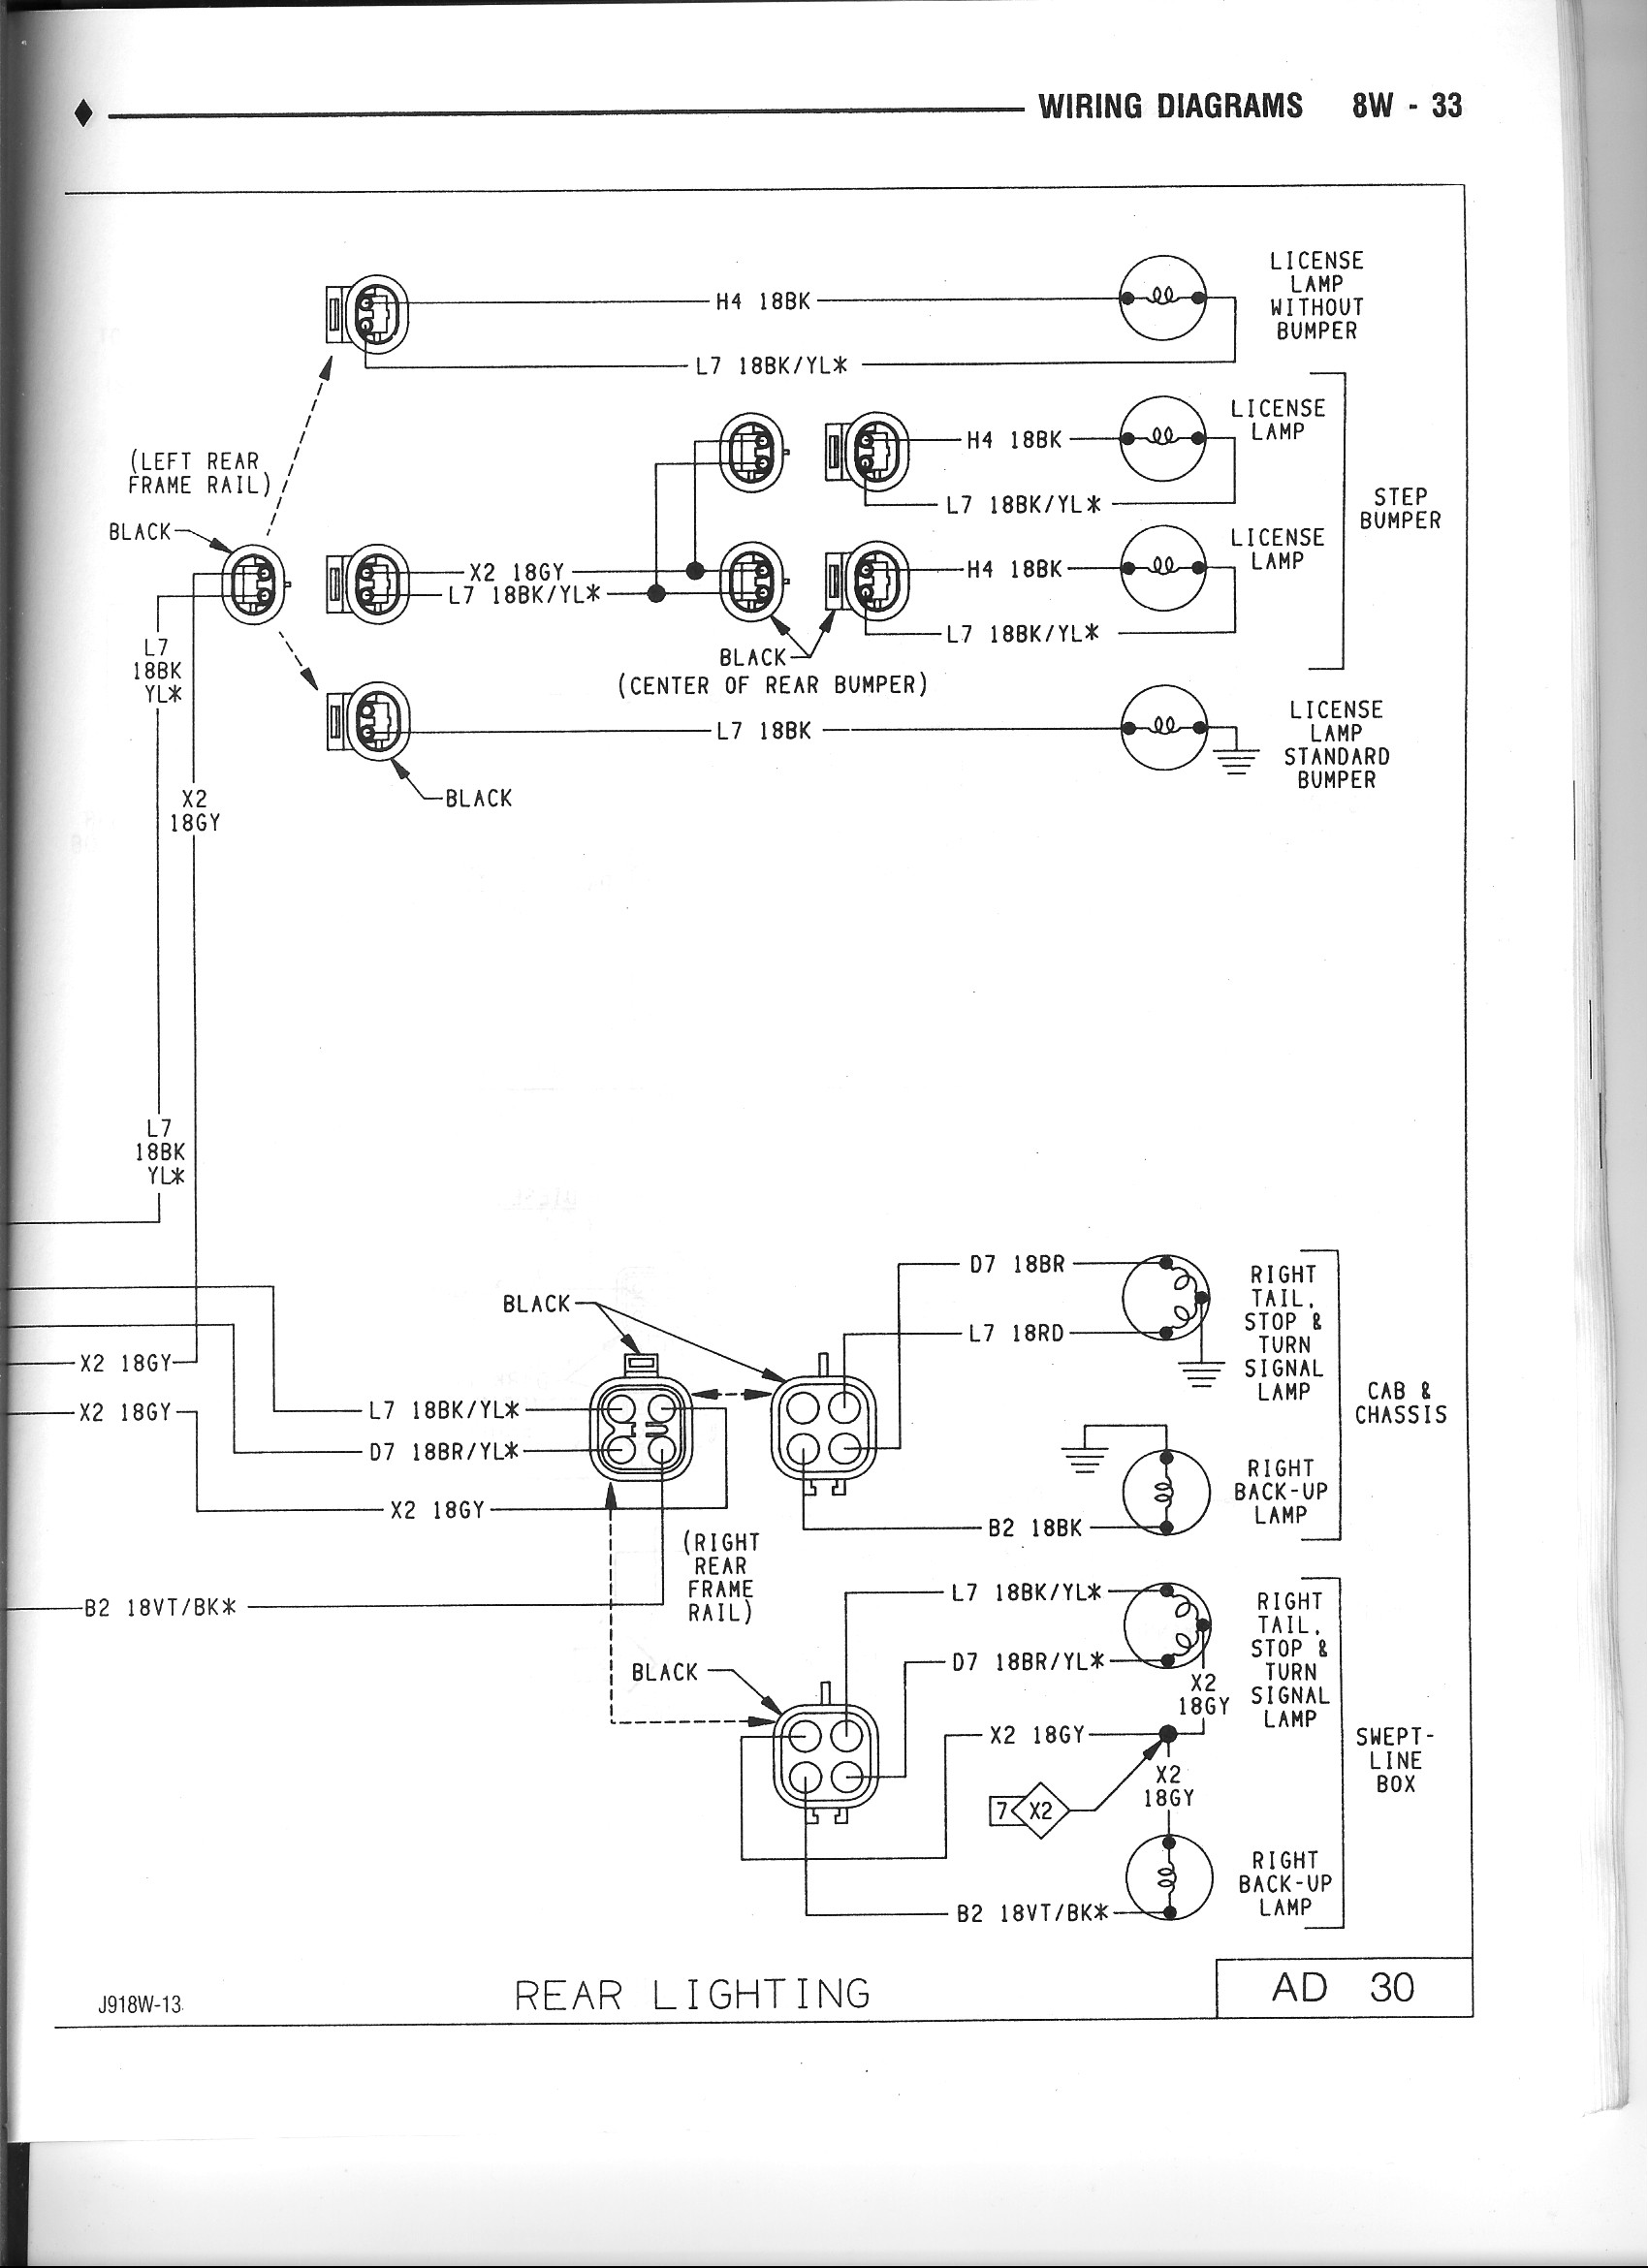 92 Dodge Diesel Wiring Diagram Explore On The Net 2500 Alternator 1993 W250 Diagrams Schematic Rh 47 Slf Urban De 1992 Cummins 89